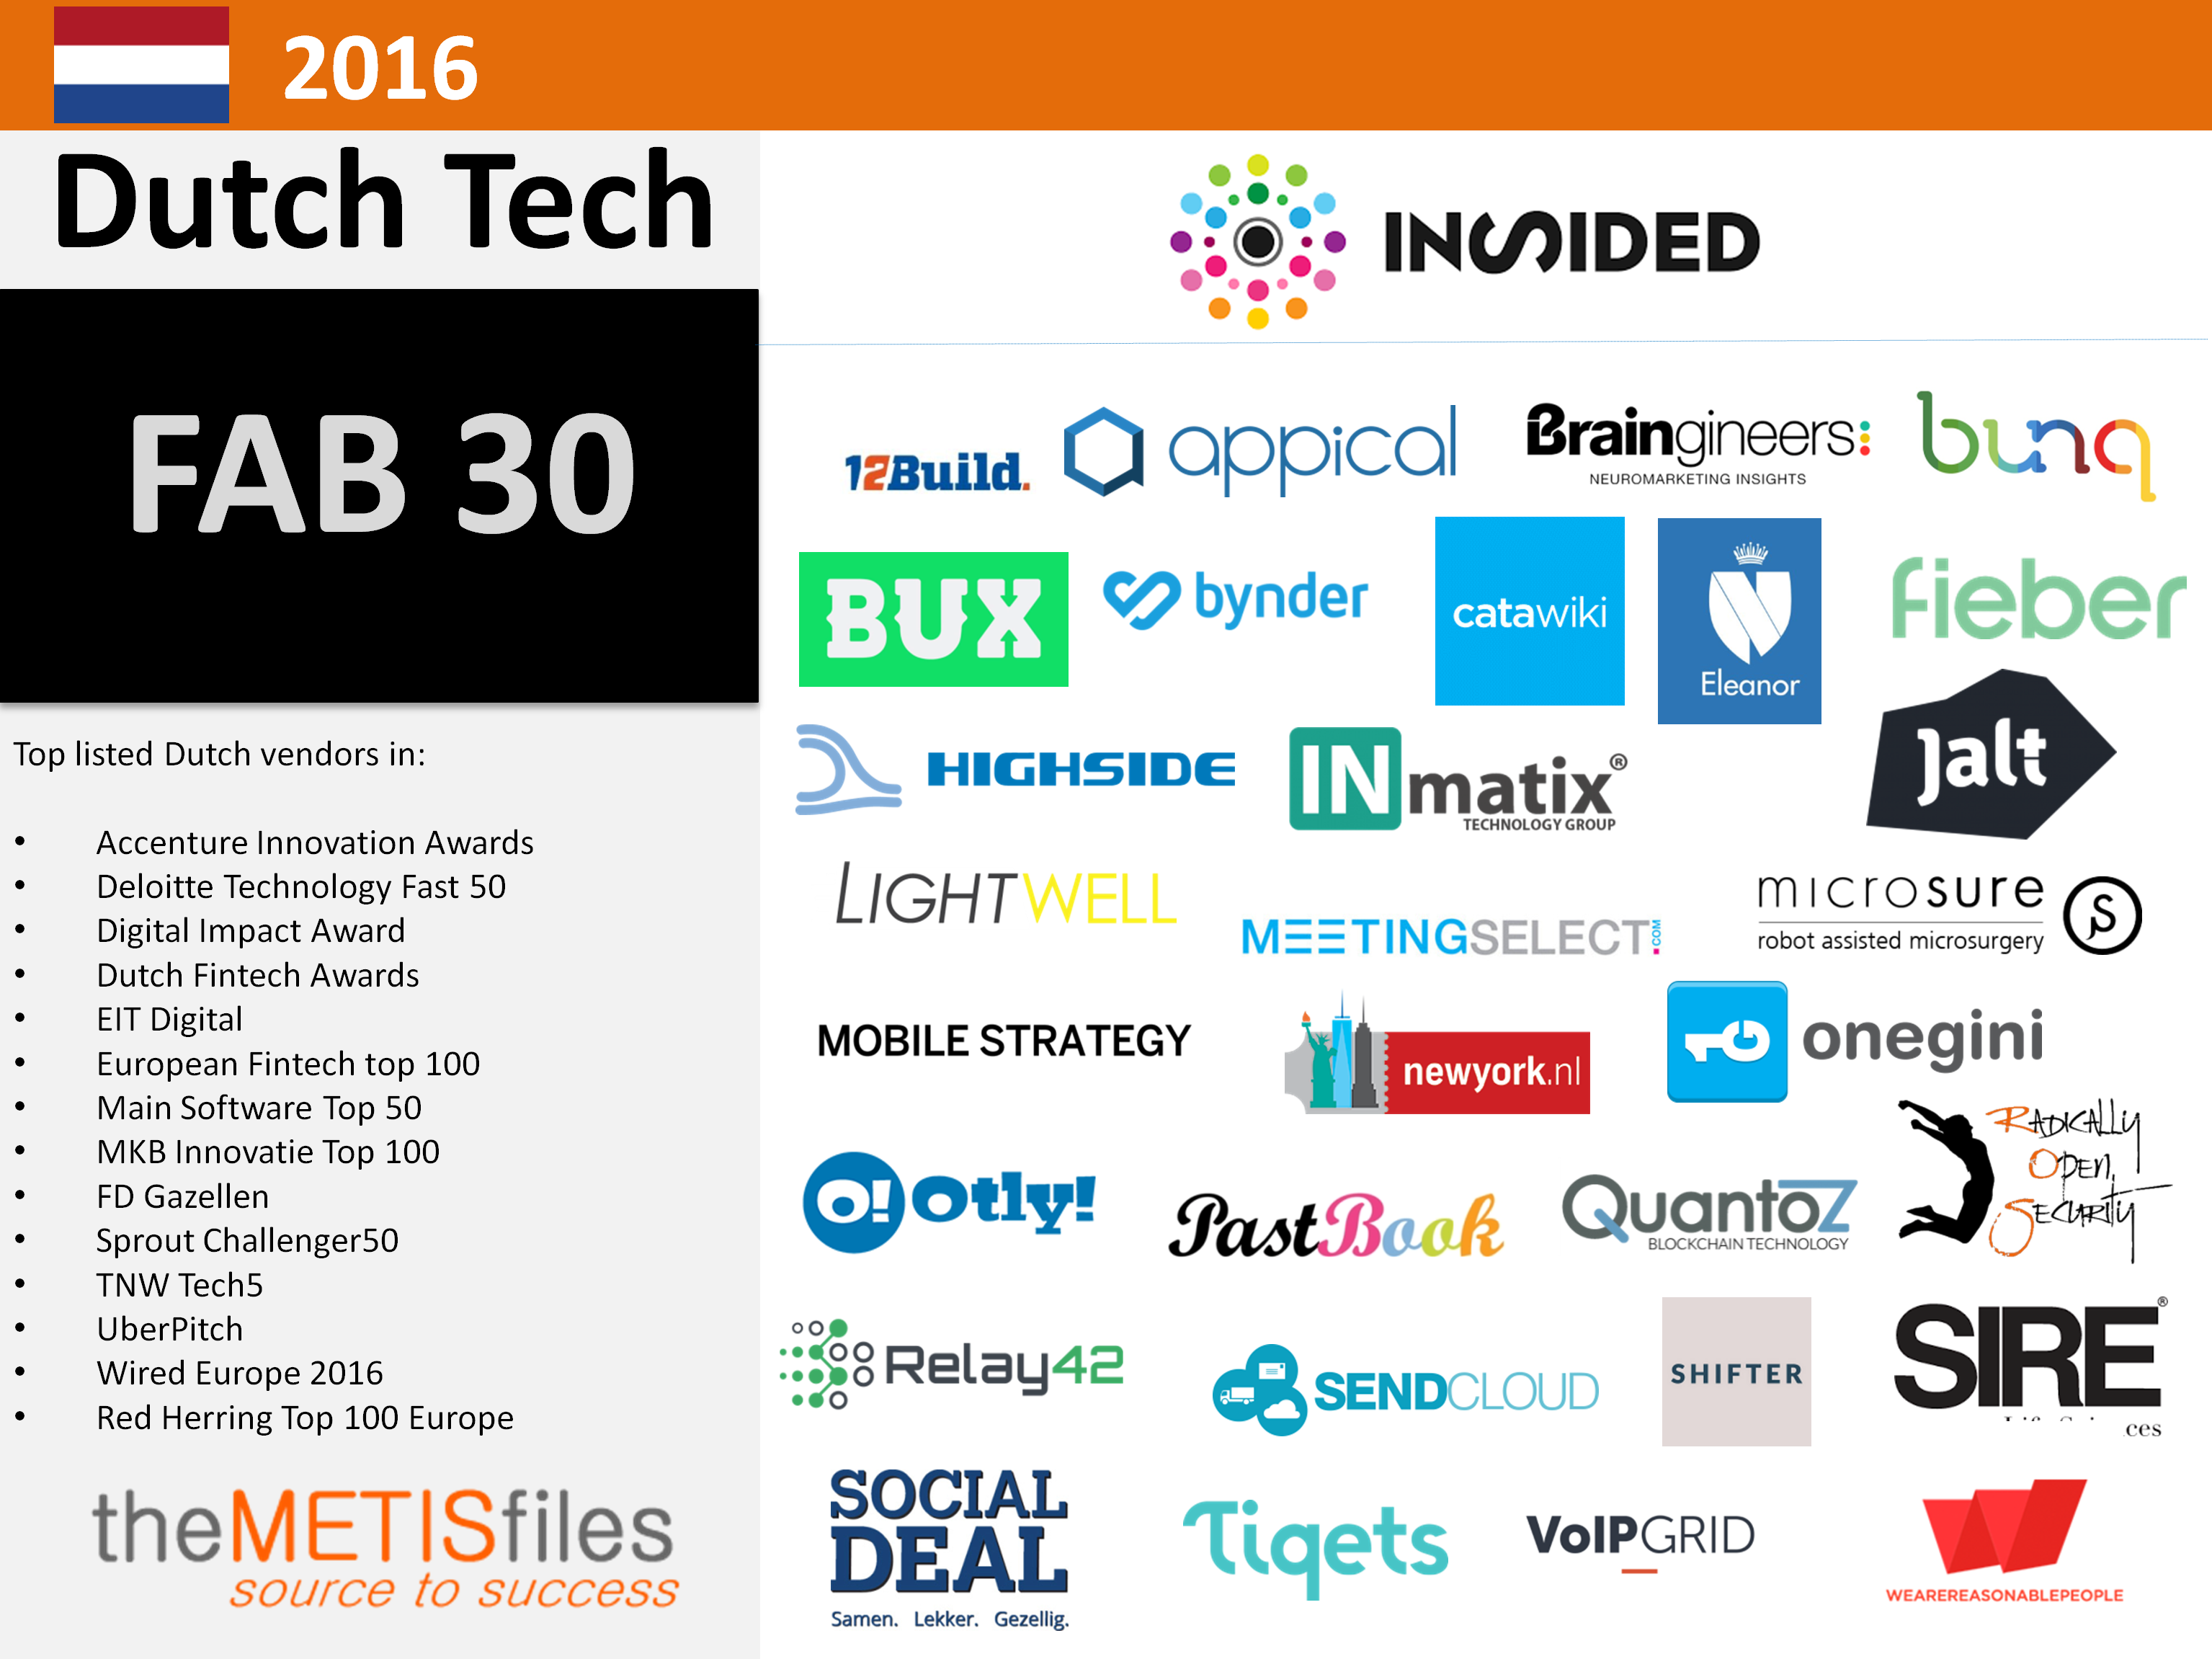 Onegini Dutch Tech Fab 30 2016